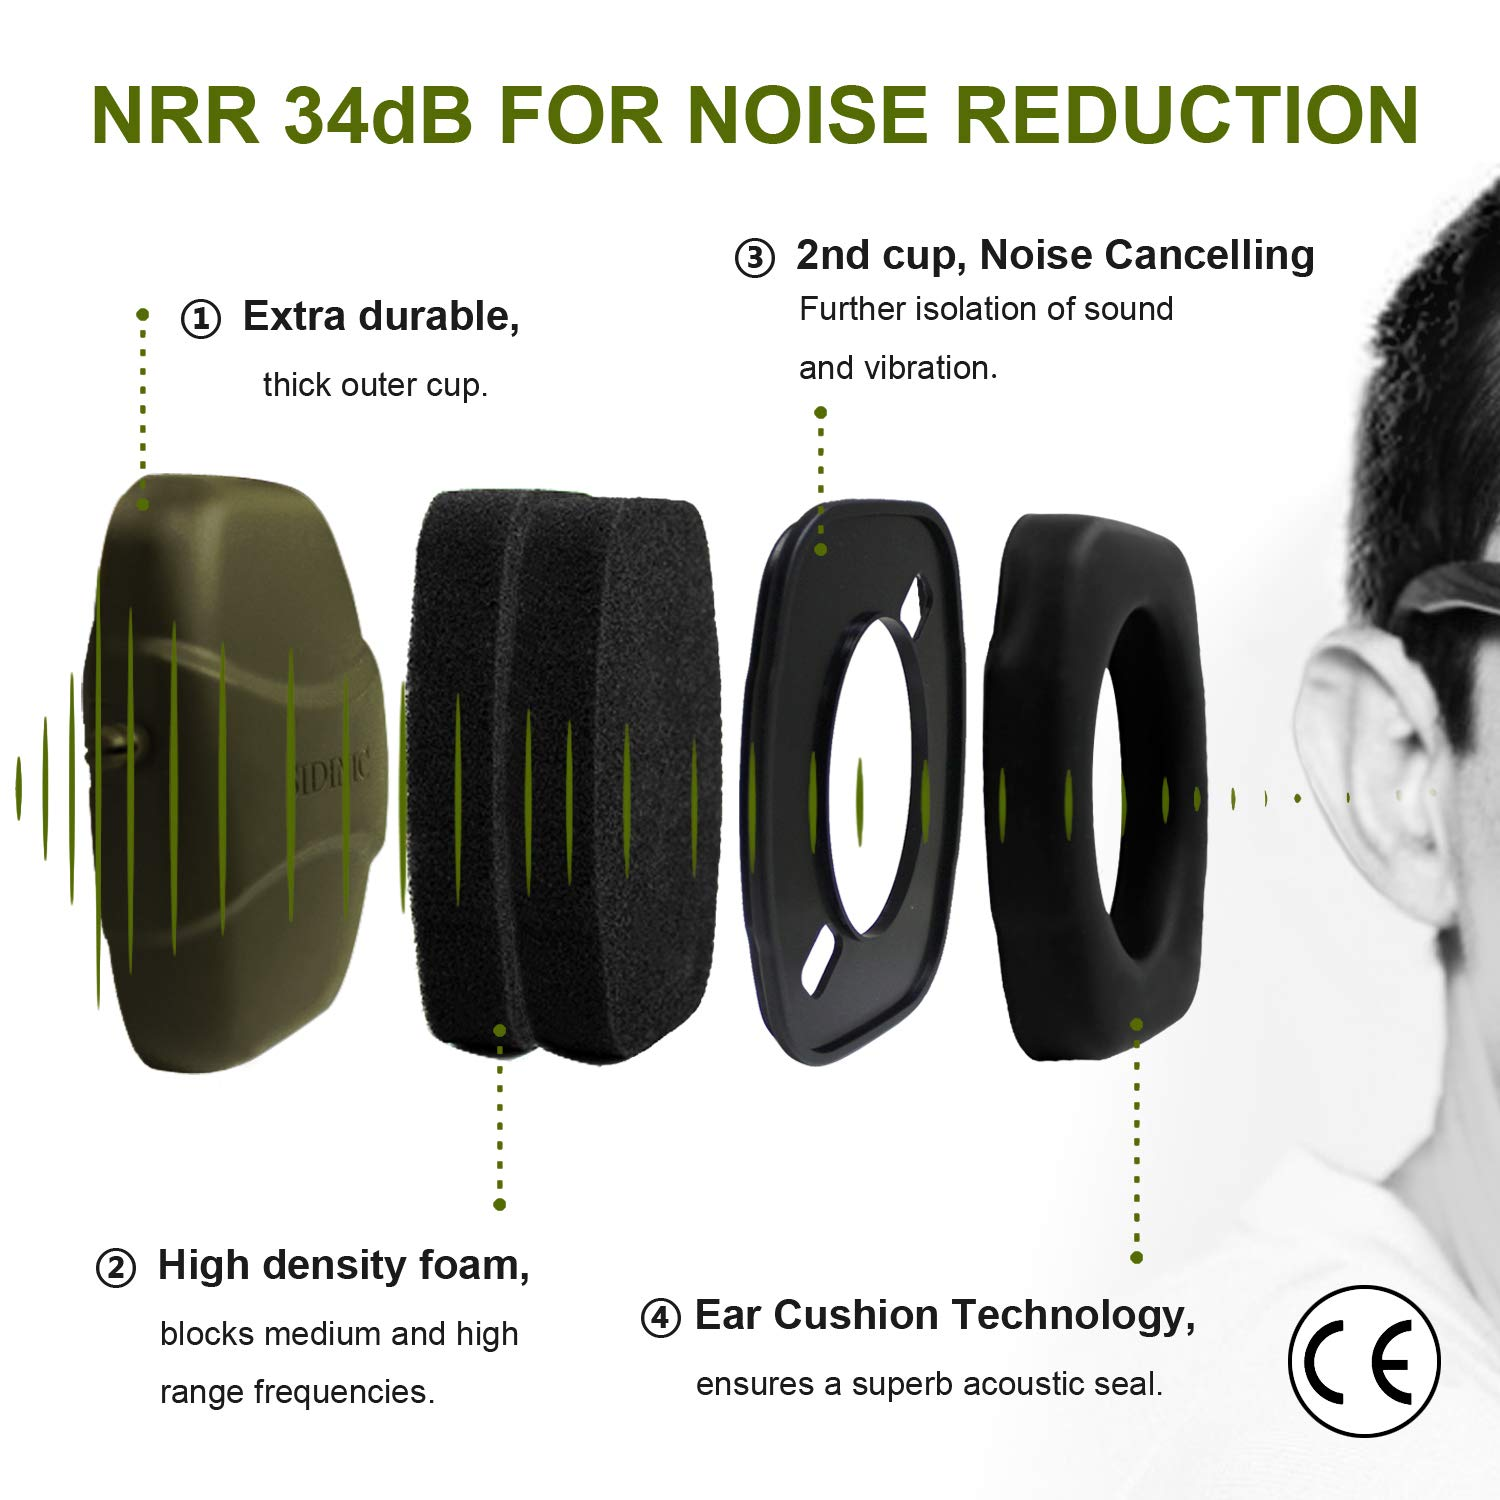 ucho Shooting Earmuff Safety Ear Protection - NRR 34dB Shooting Ear Protection Noise Reduction Cancelling Headphones for Adults & Kids Ear Protection for Shooting Hearing